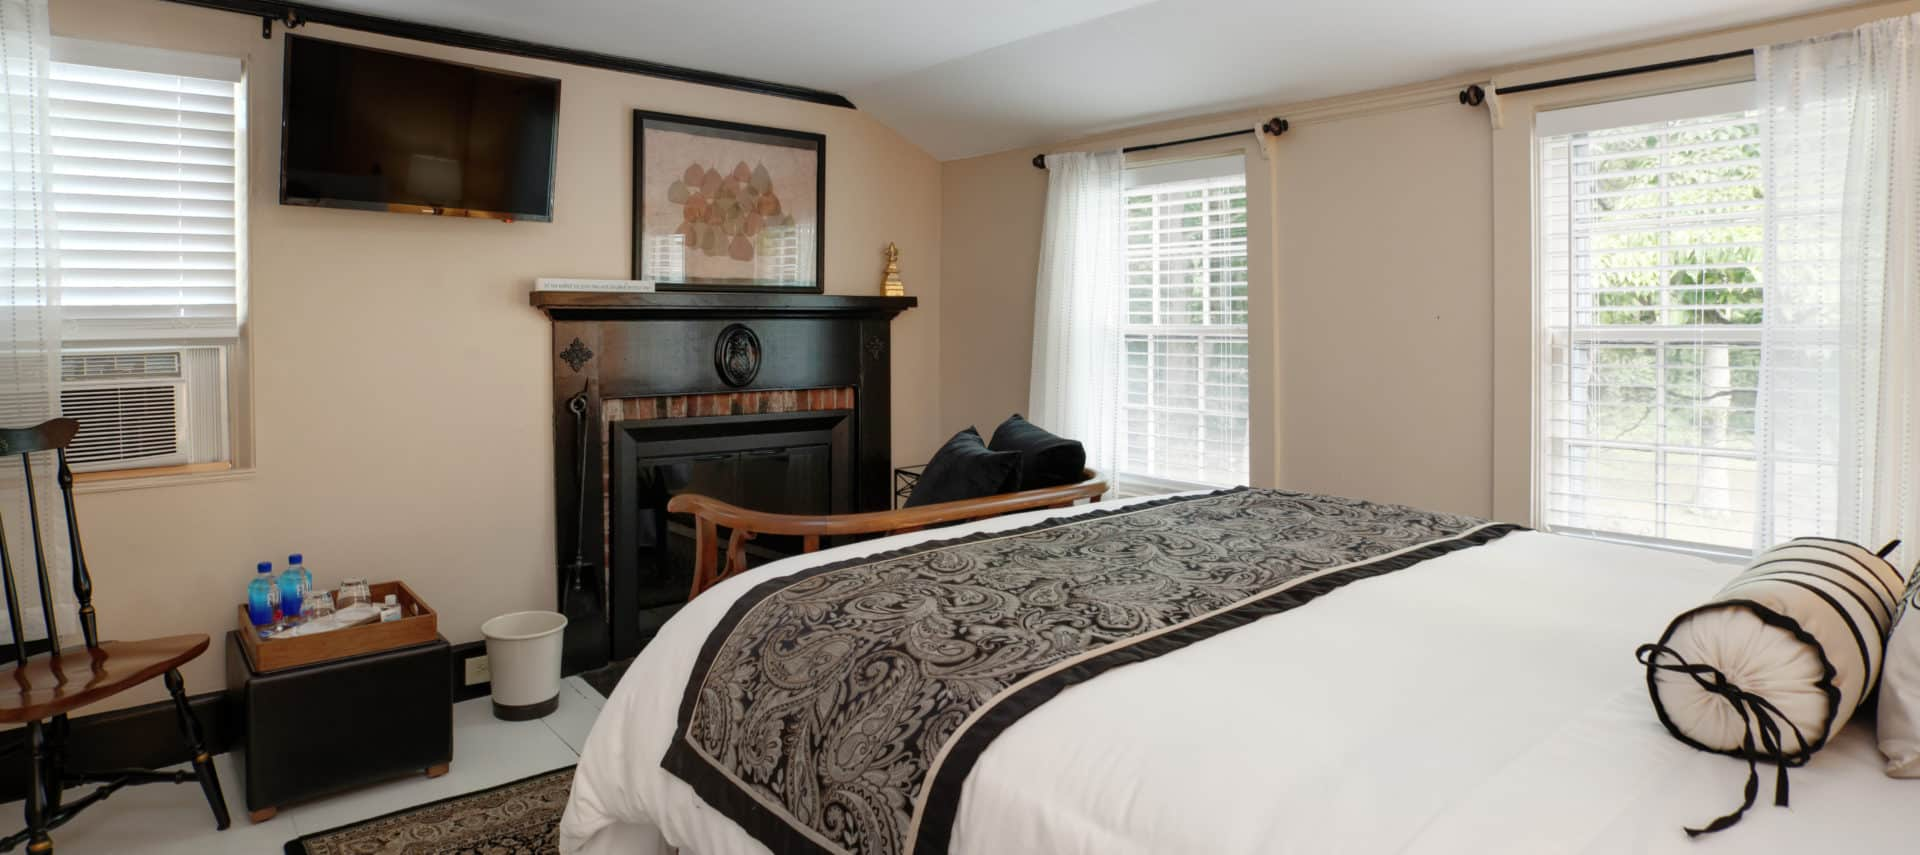 Orleans guest room viewing queen bed, fireplace, seating area